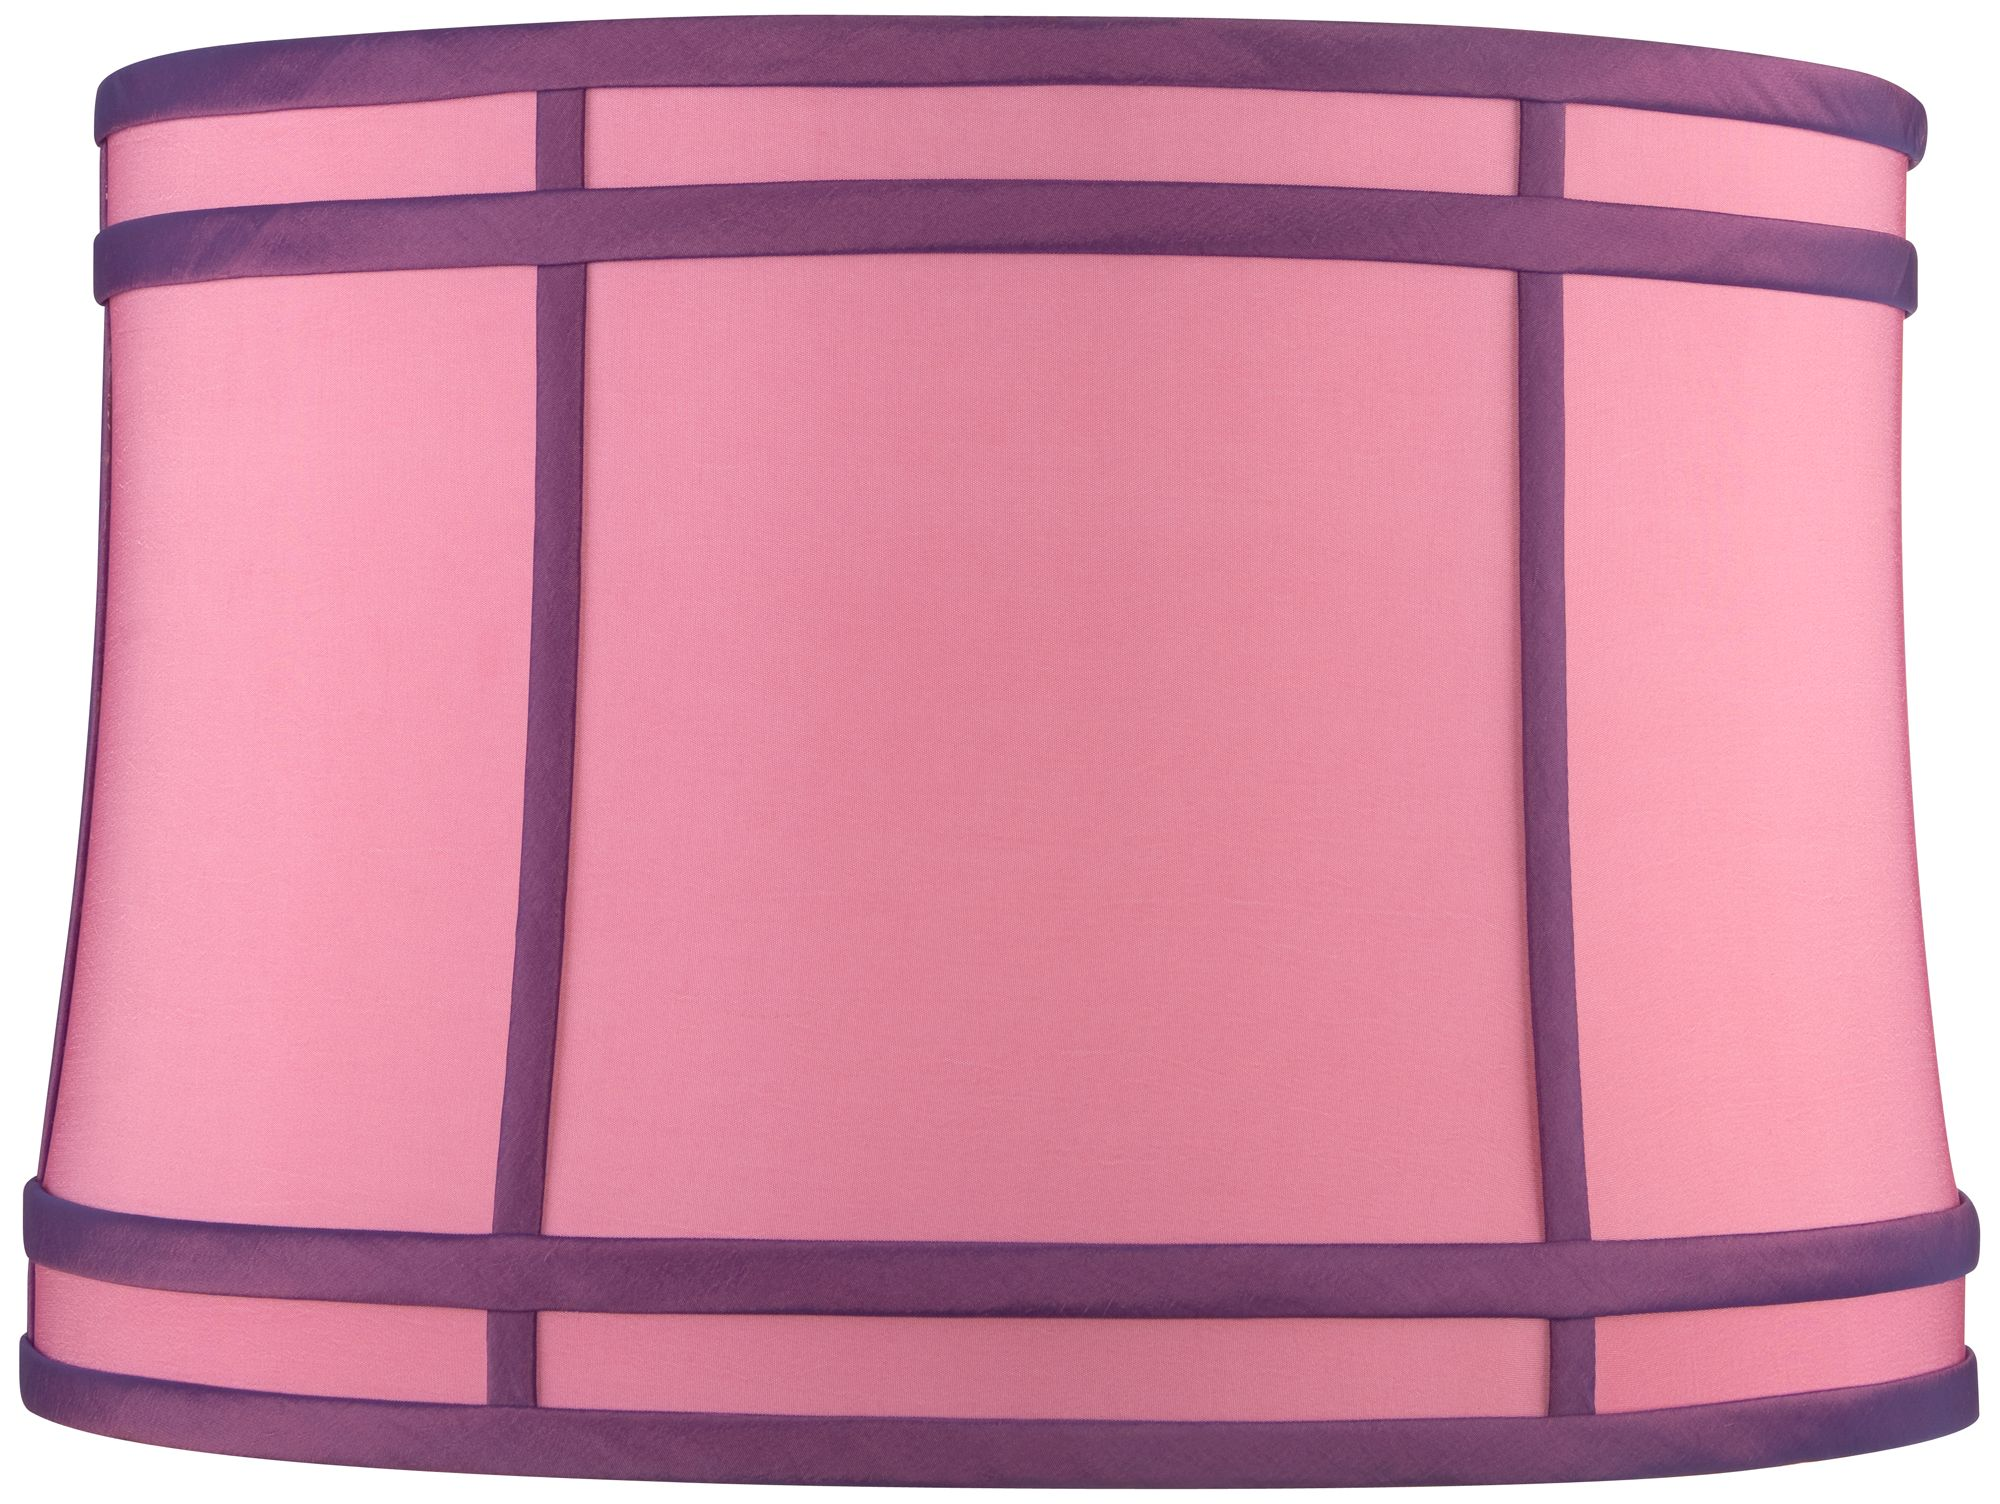 pink purple colorblock drum lamp shade 15x16x11 spider - Drum Lamp Shades